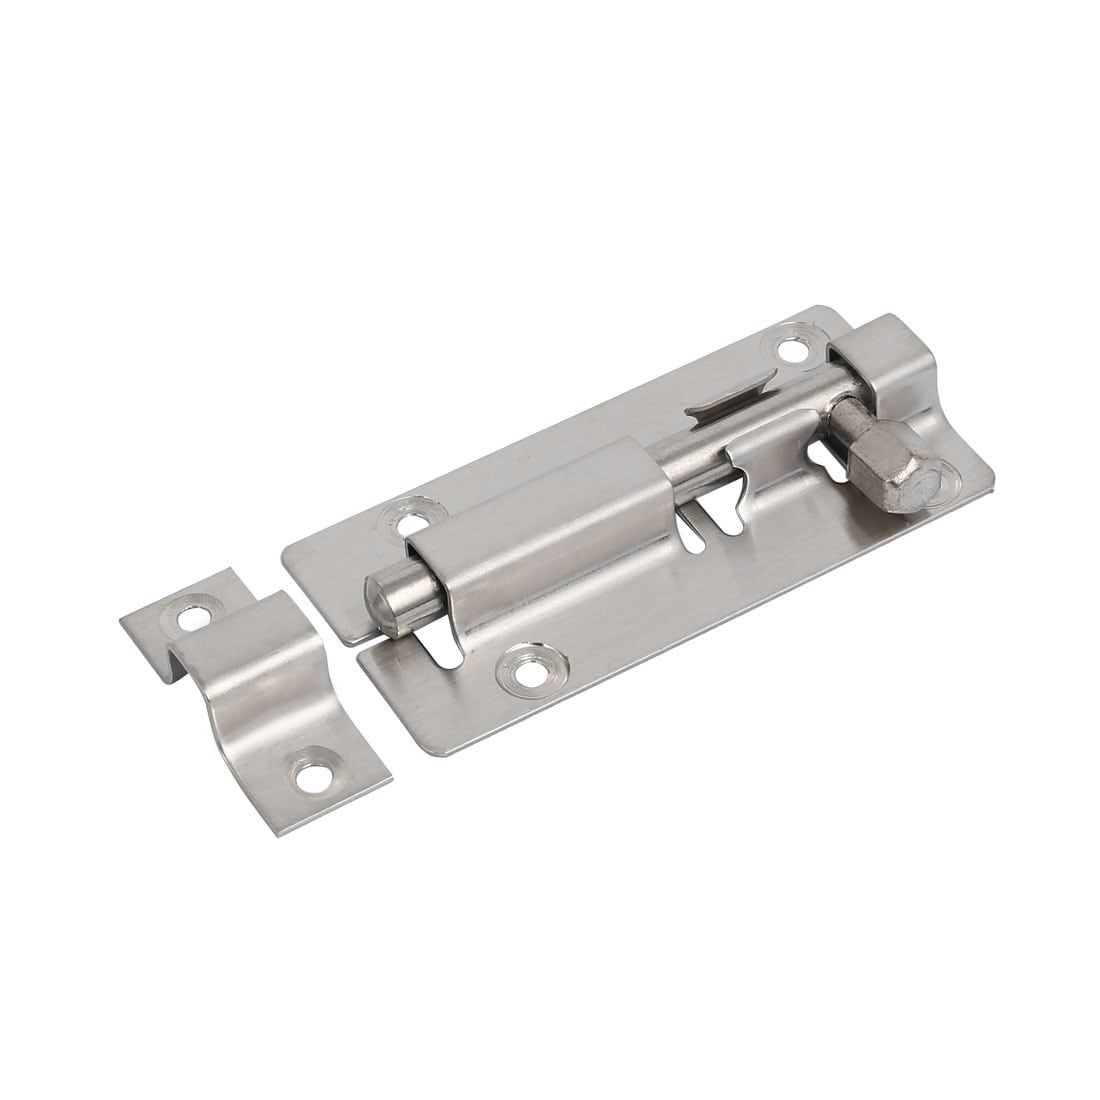 security door latches. 88mm Long Stainless Steel (Silver) Security Door Slide Latch Barrel Bolt Lock Latches